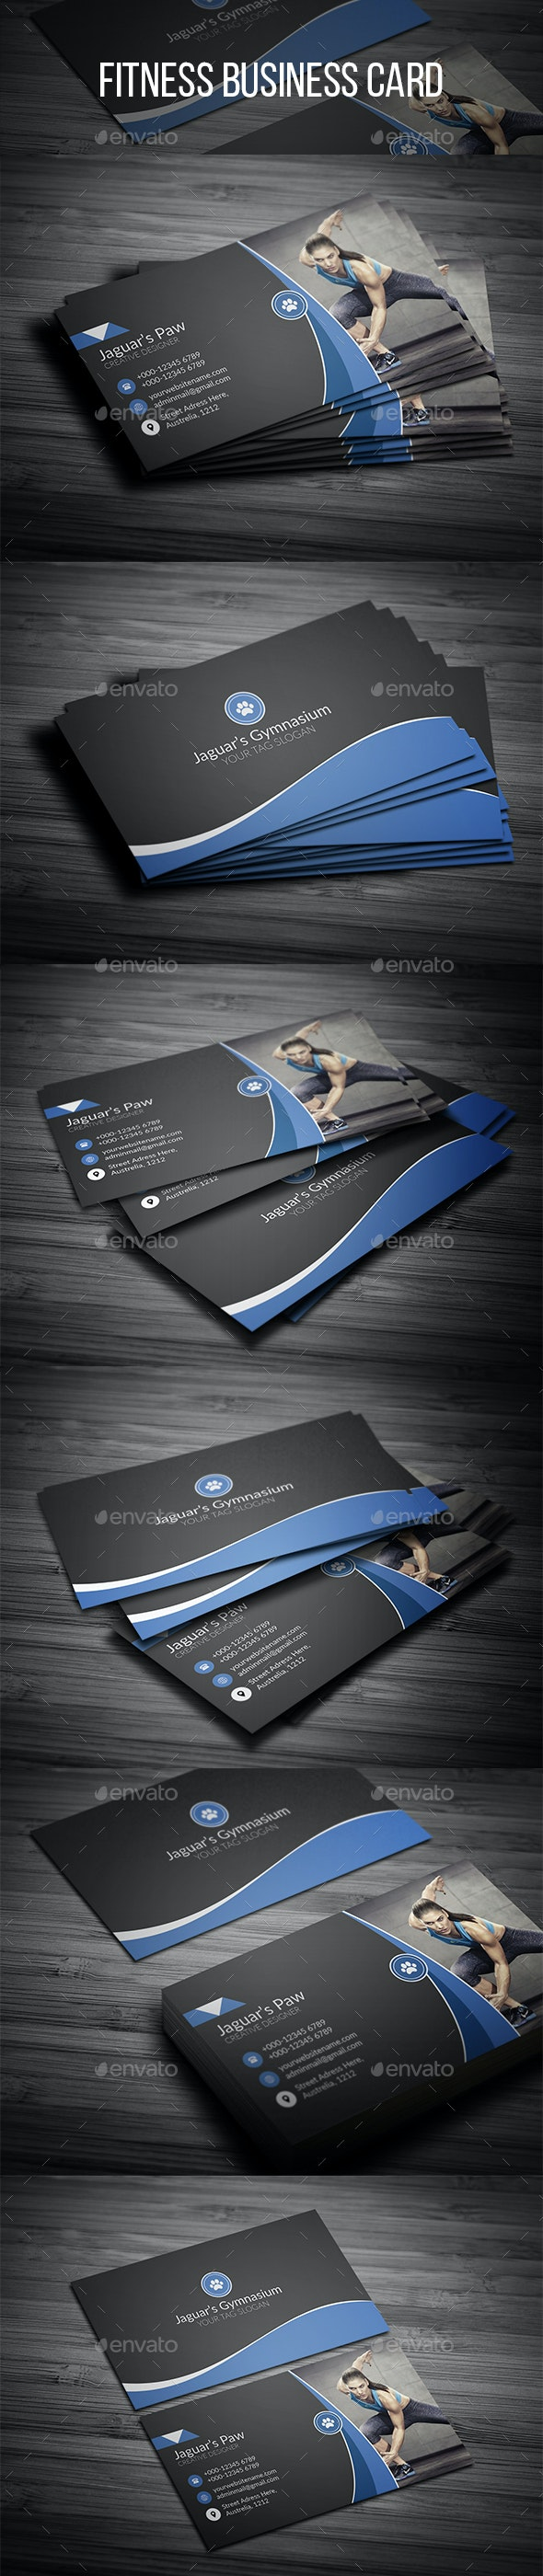 Fitness Business Card - Creative Business Cards